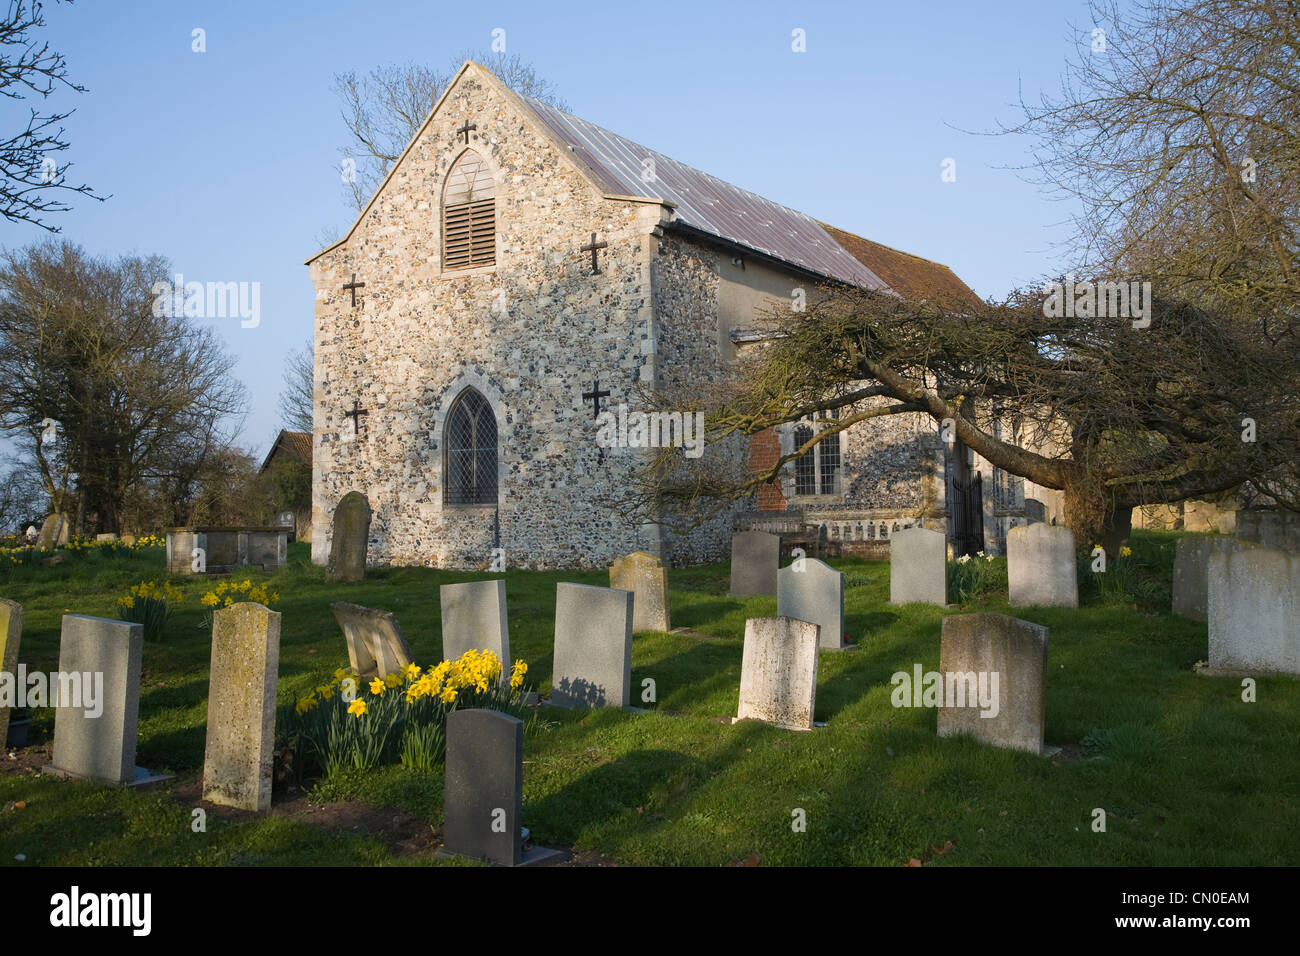 Church of All Saints, Saxted, Suffolk, England - Stock Image